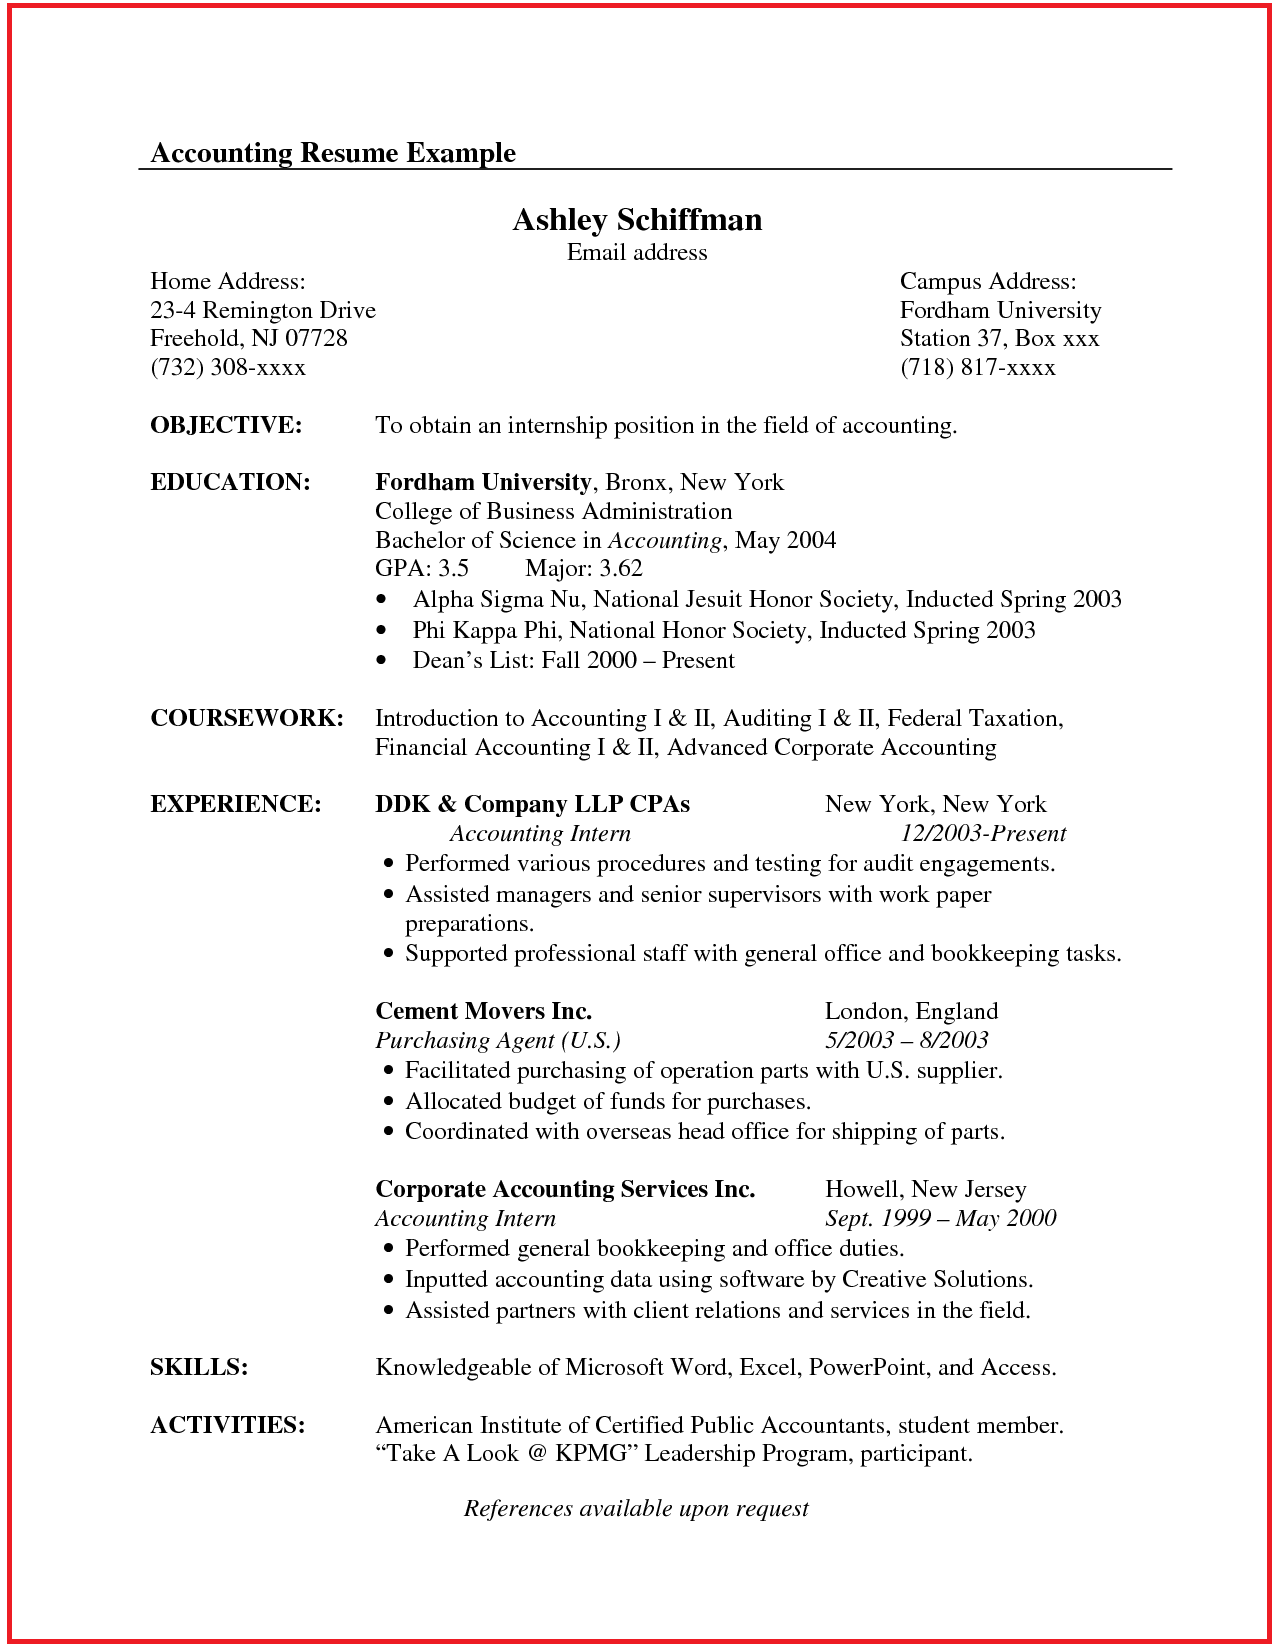 Accountant Resume Sample Canada Resume Examples Internship Resume Accountant Resume